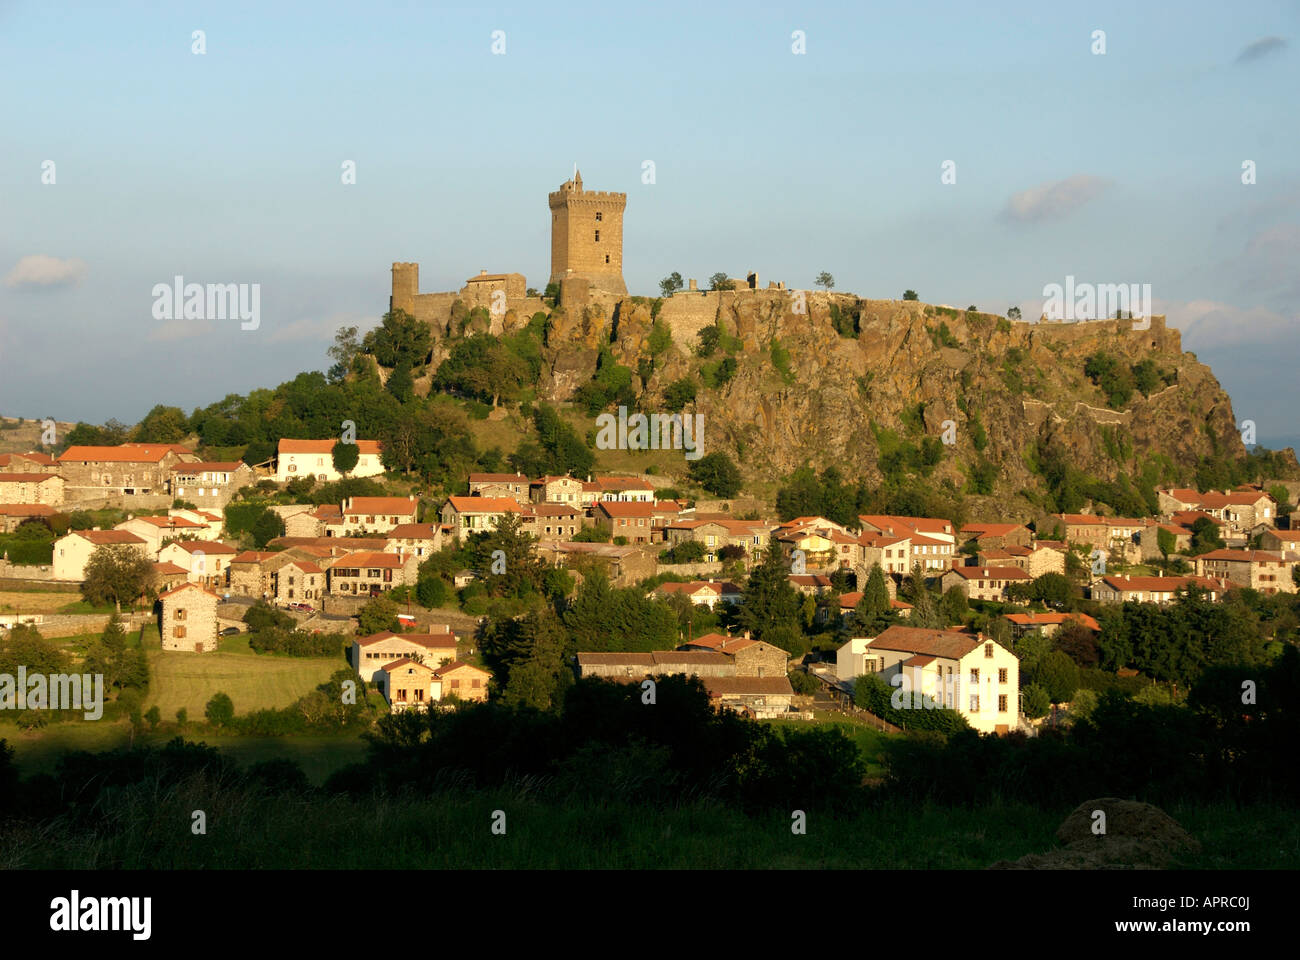 Fortress Of Polignac  Haute Loire  Auvergne  France Stock Photo  Royalty Free Image  15850241